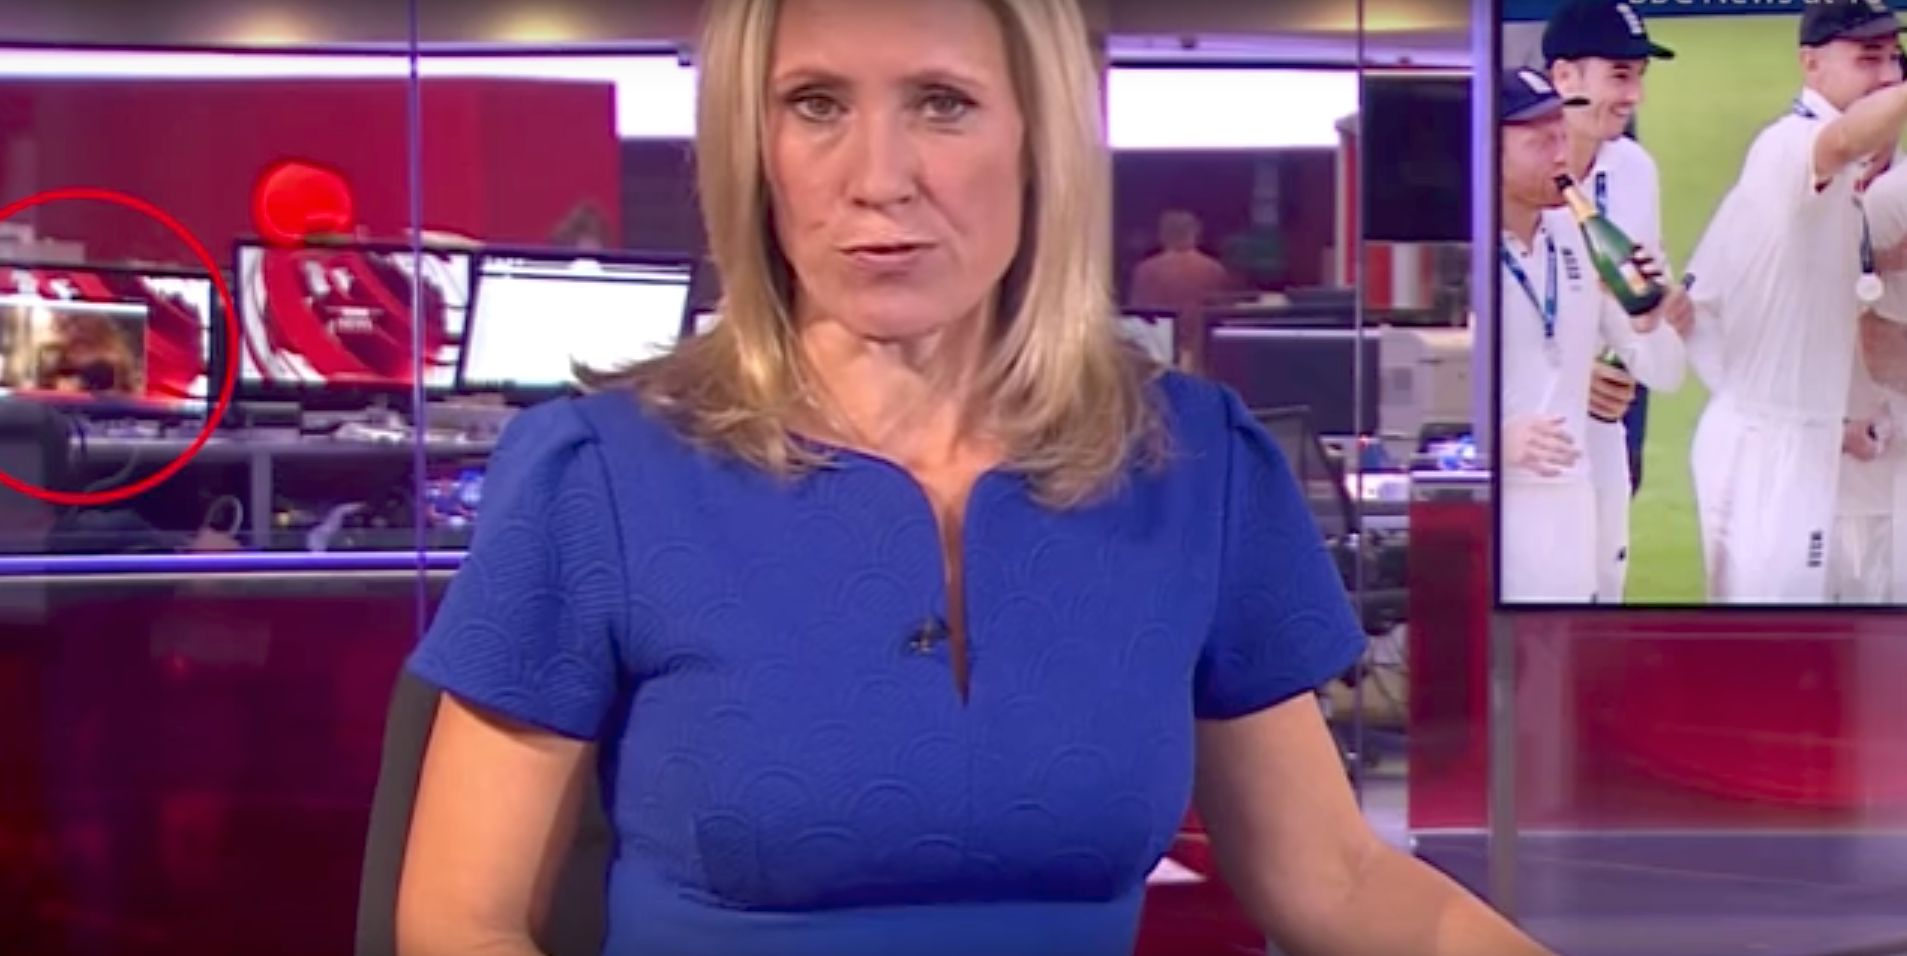 A womans breasts were exposed in the background of a BBC News broadcast on Tuesday night